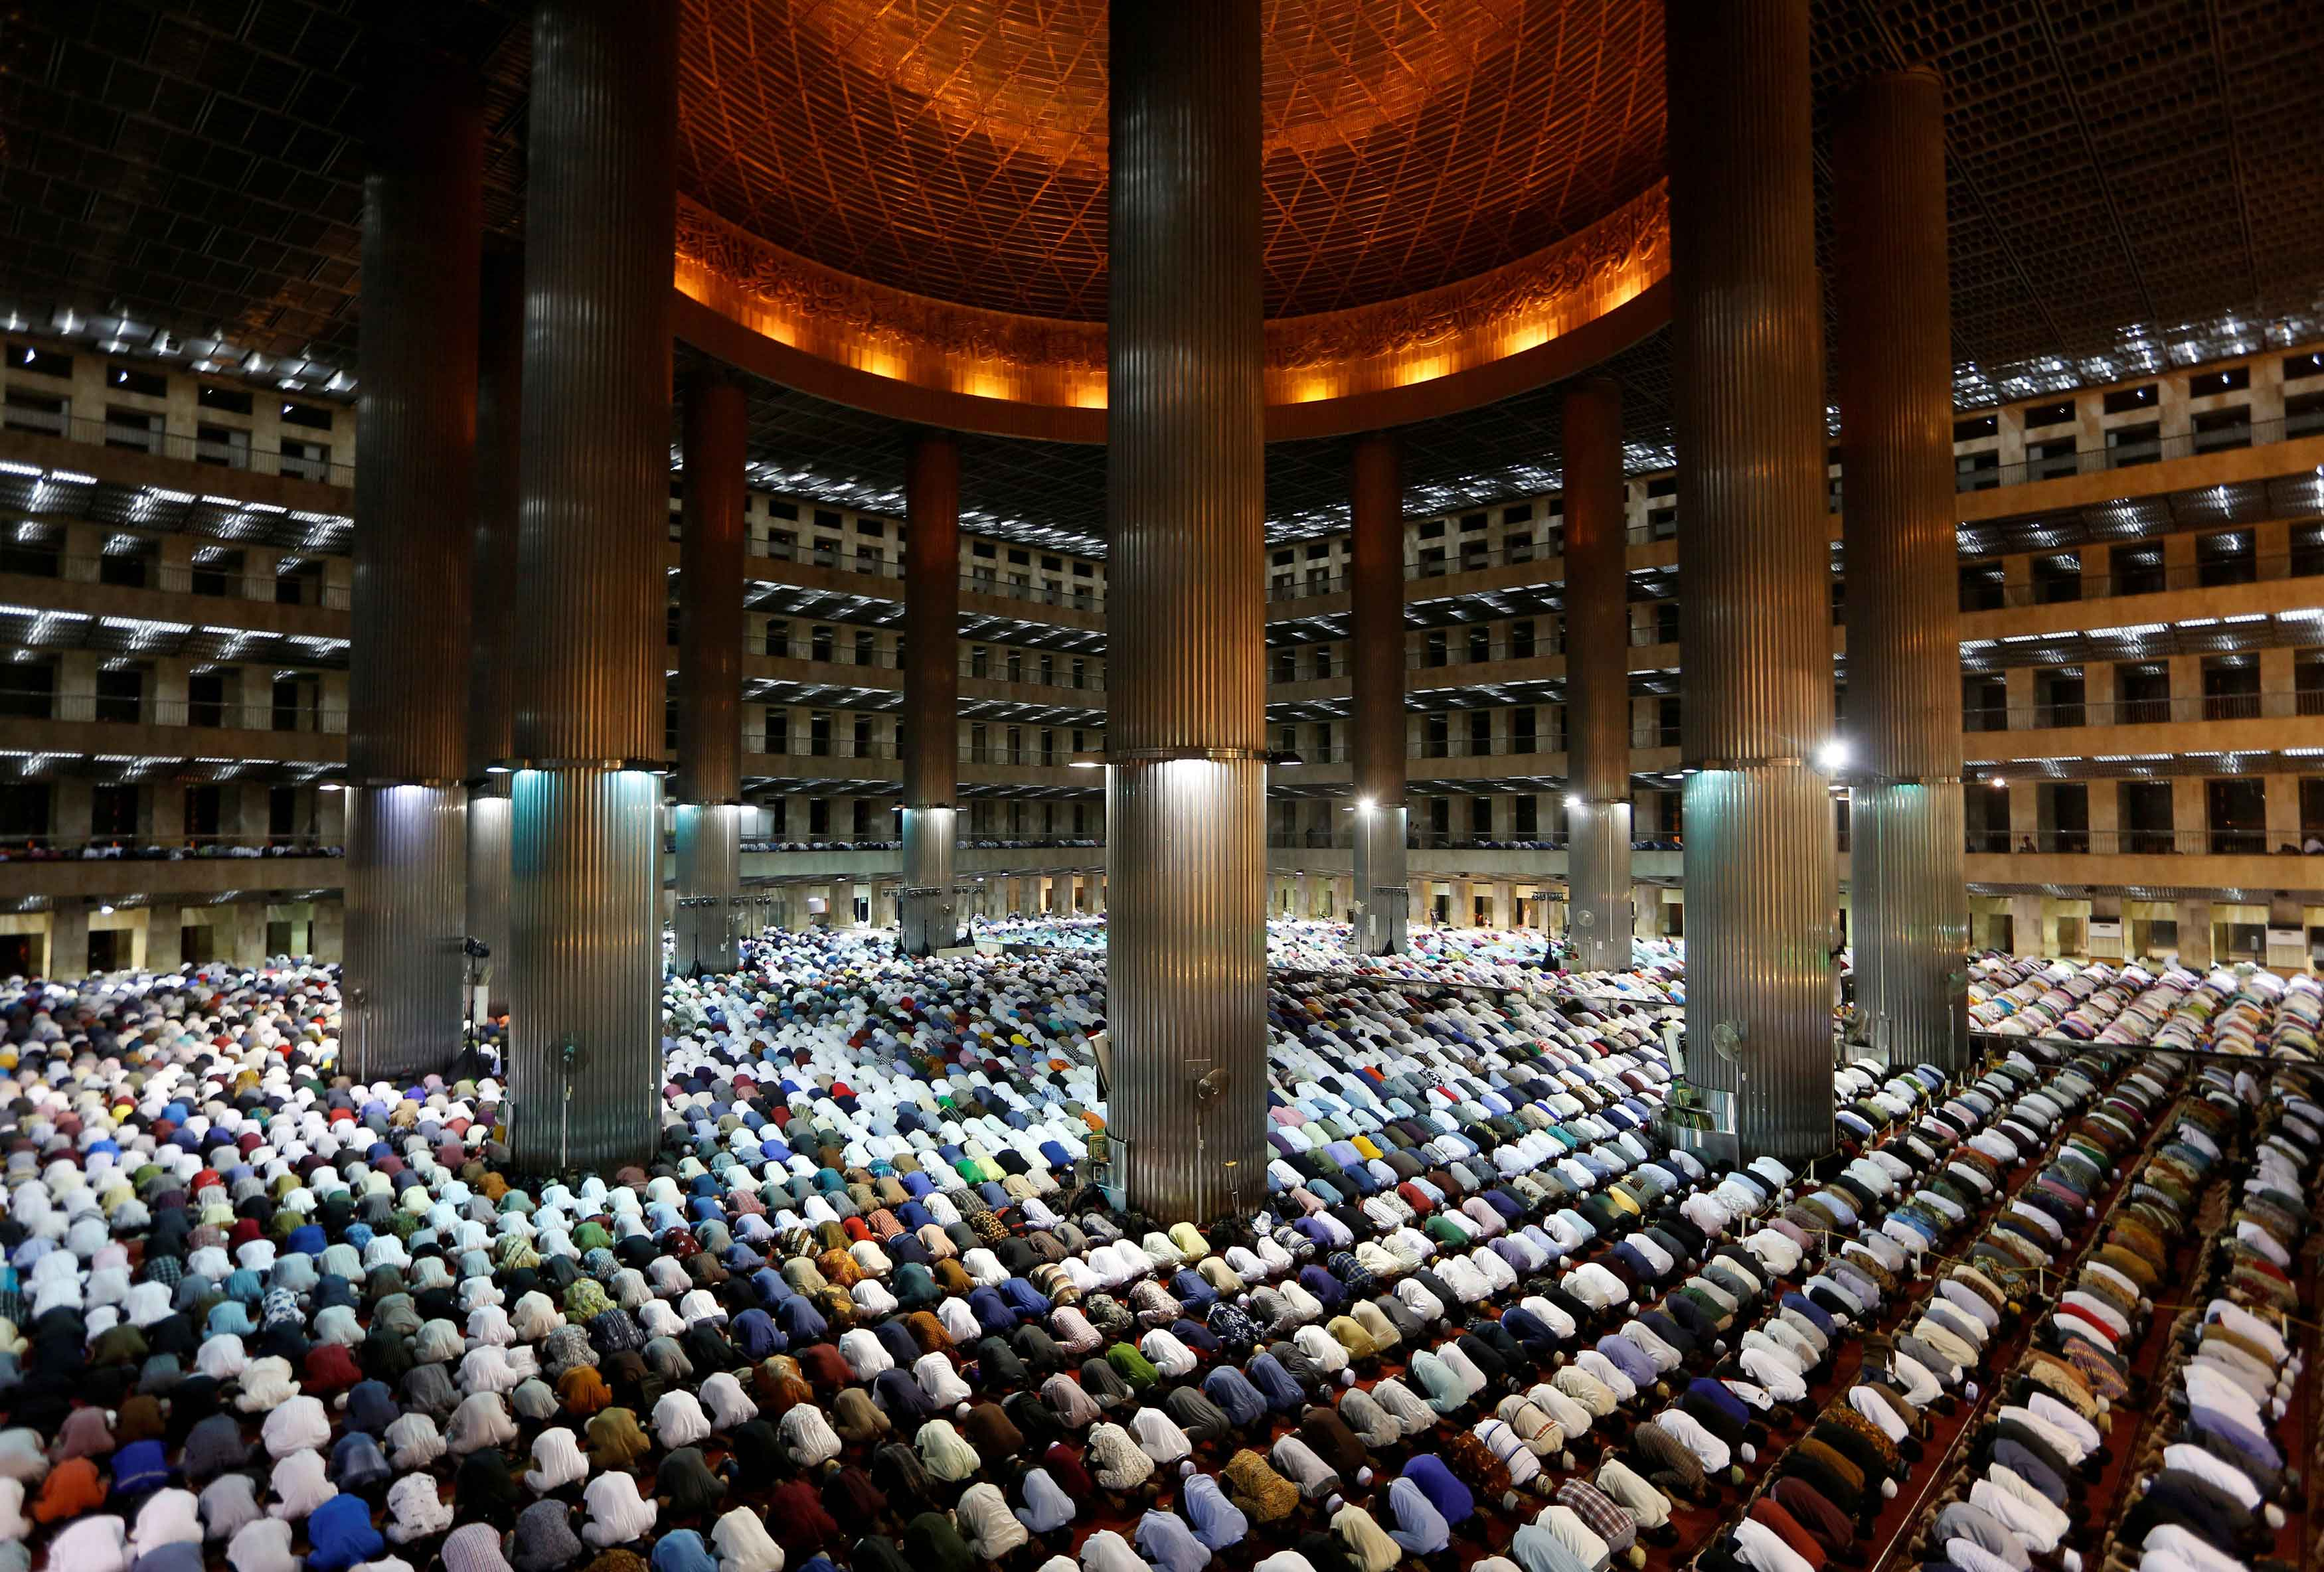 Taraweeh prayer in Istiqlal Mosque, Indonesia on May 16, 2018.